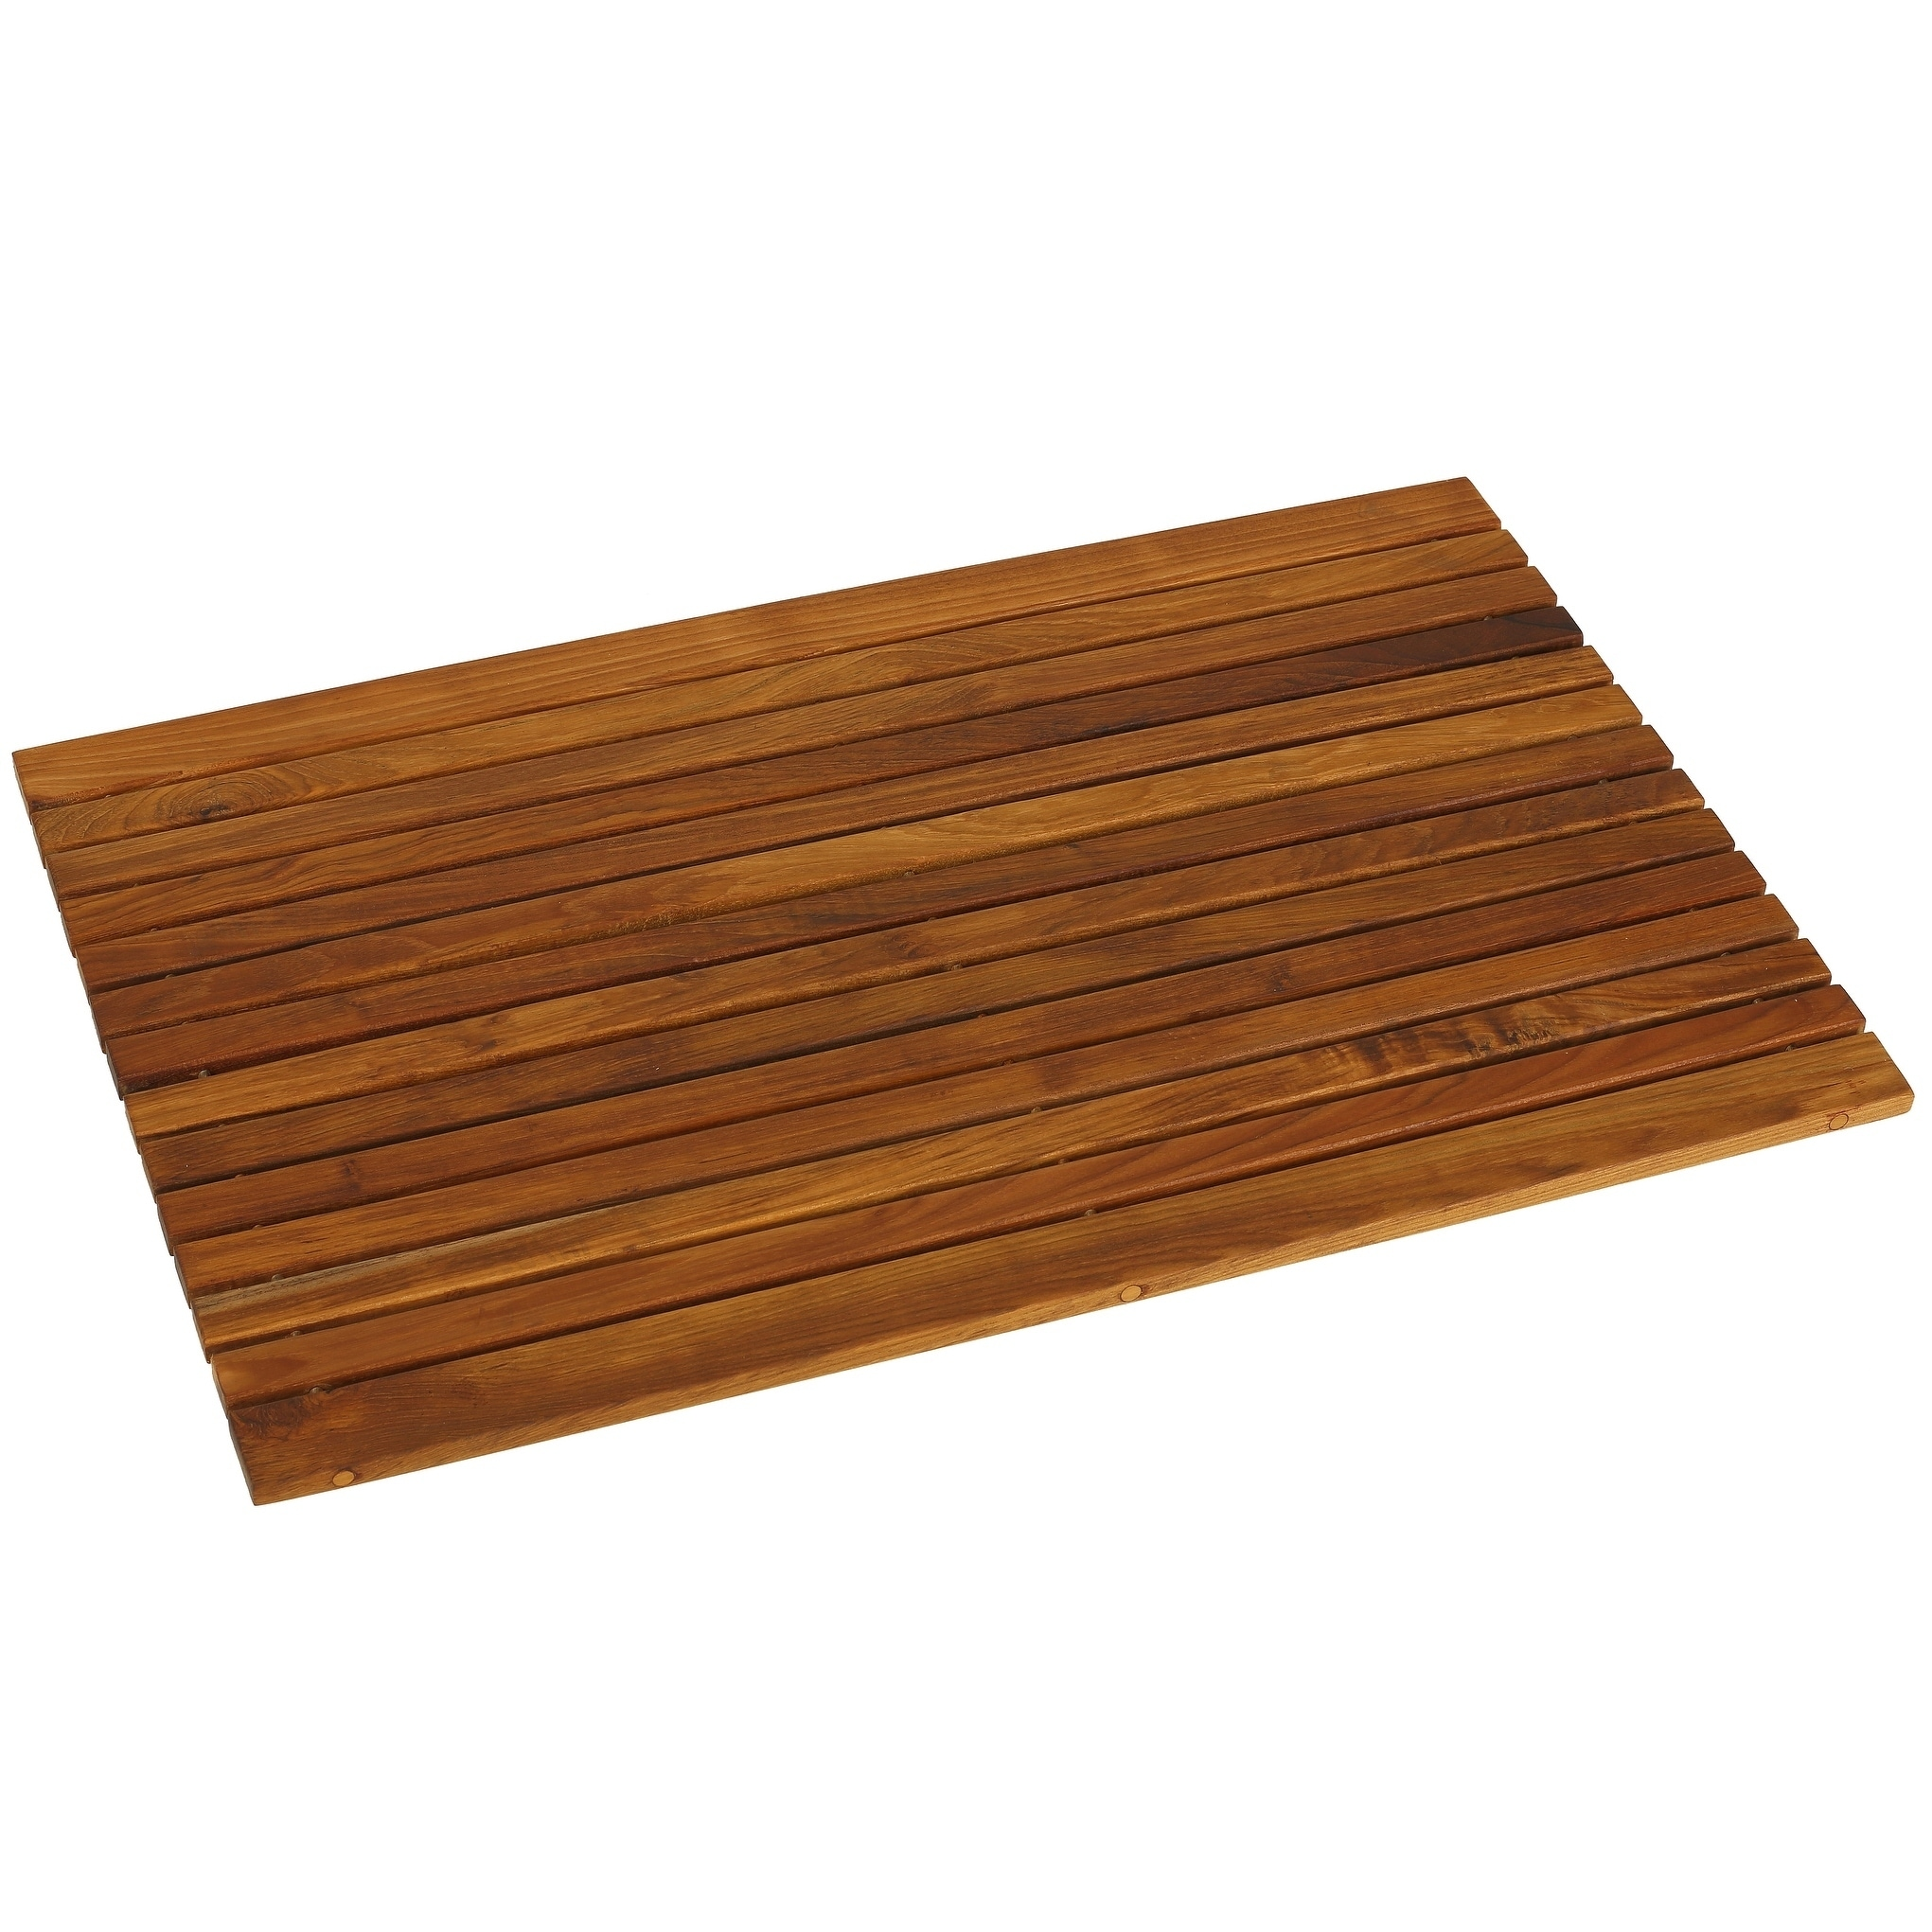 Bare Decor Cosi String Spa Shower Mat In Solid Teak Wood Oiled Finish Large 31 5 X 20